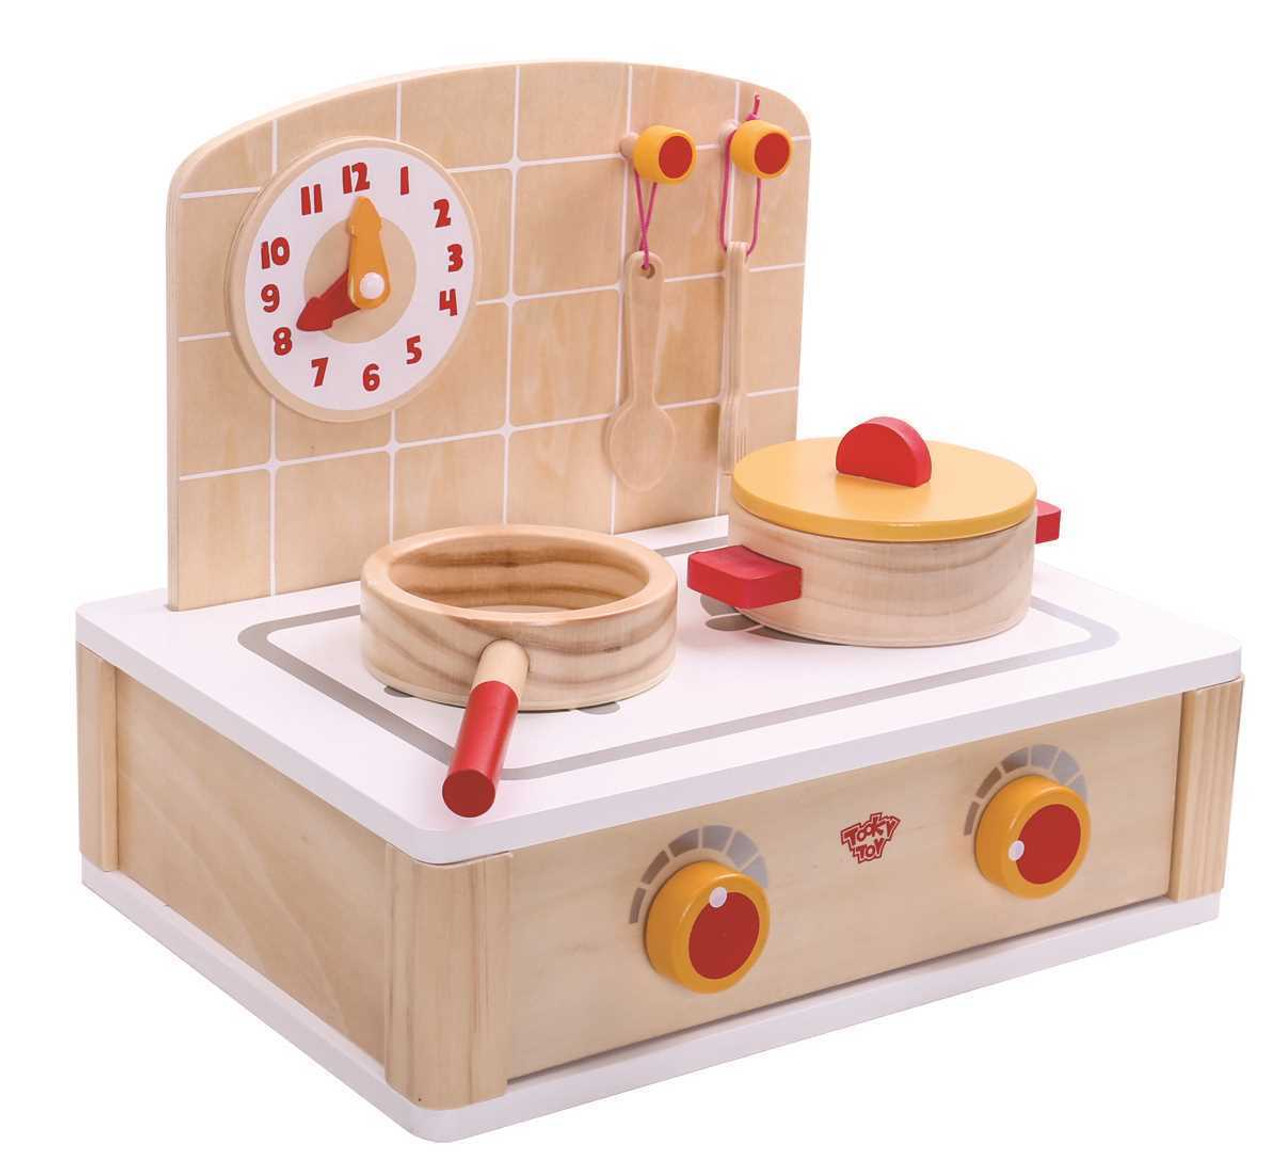 Baby barn discounts tooky toy wooden kitchen set 84826 1495076969 jpgc2imbypasson